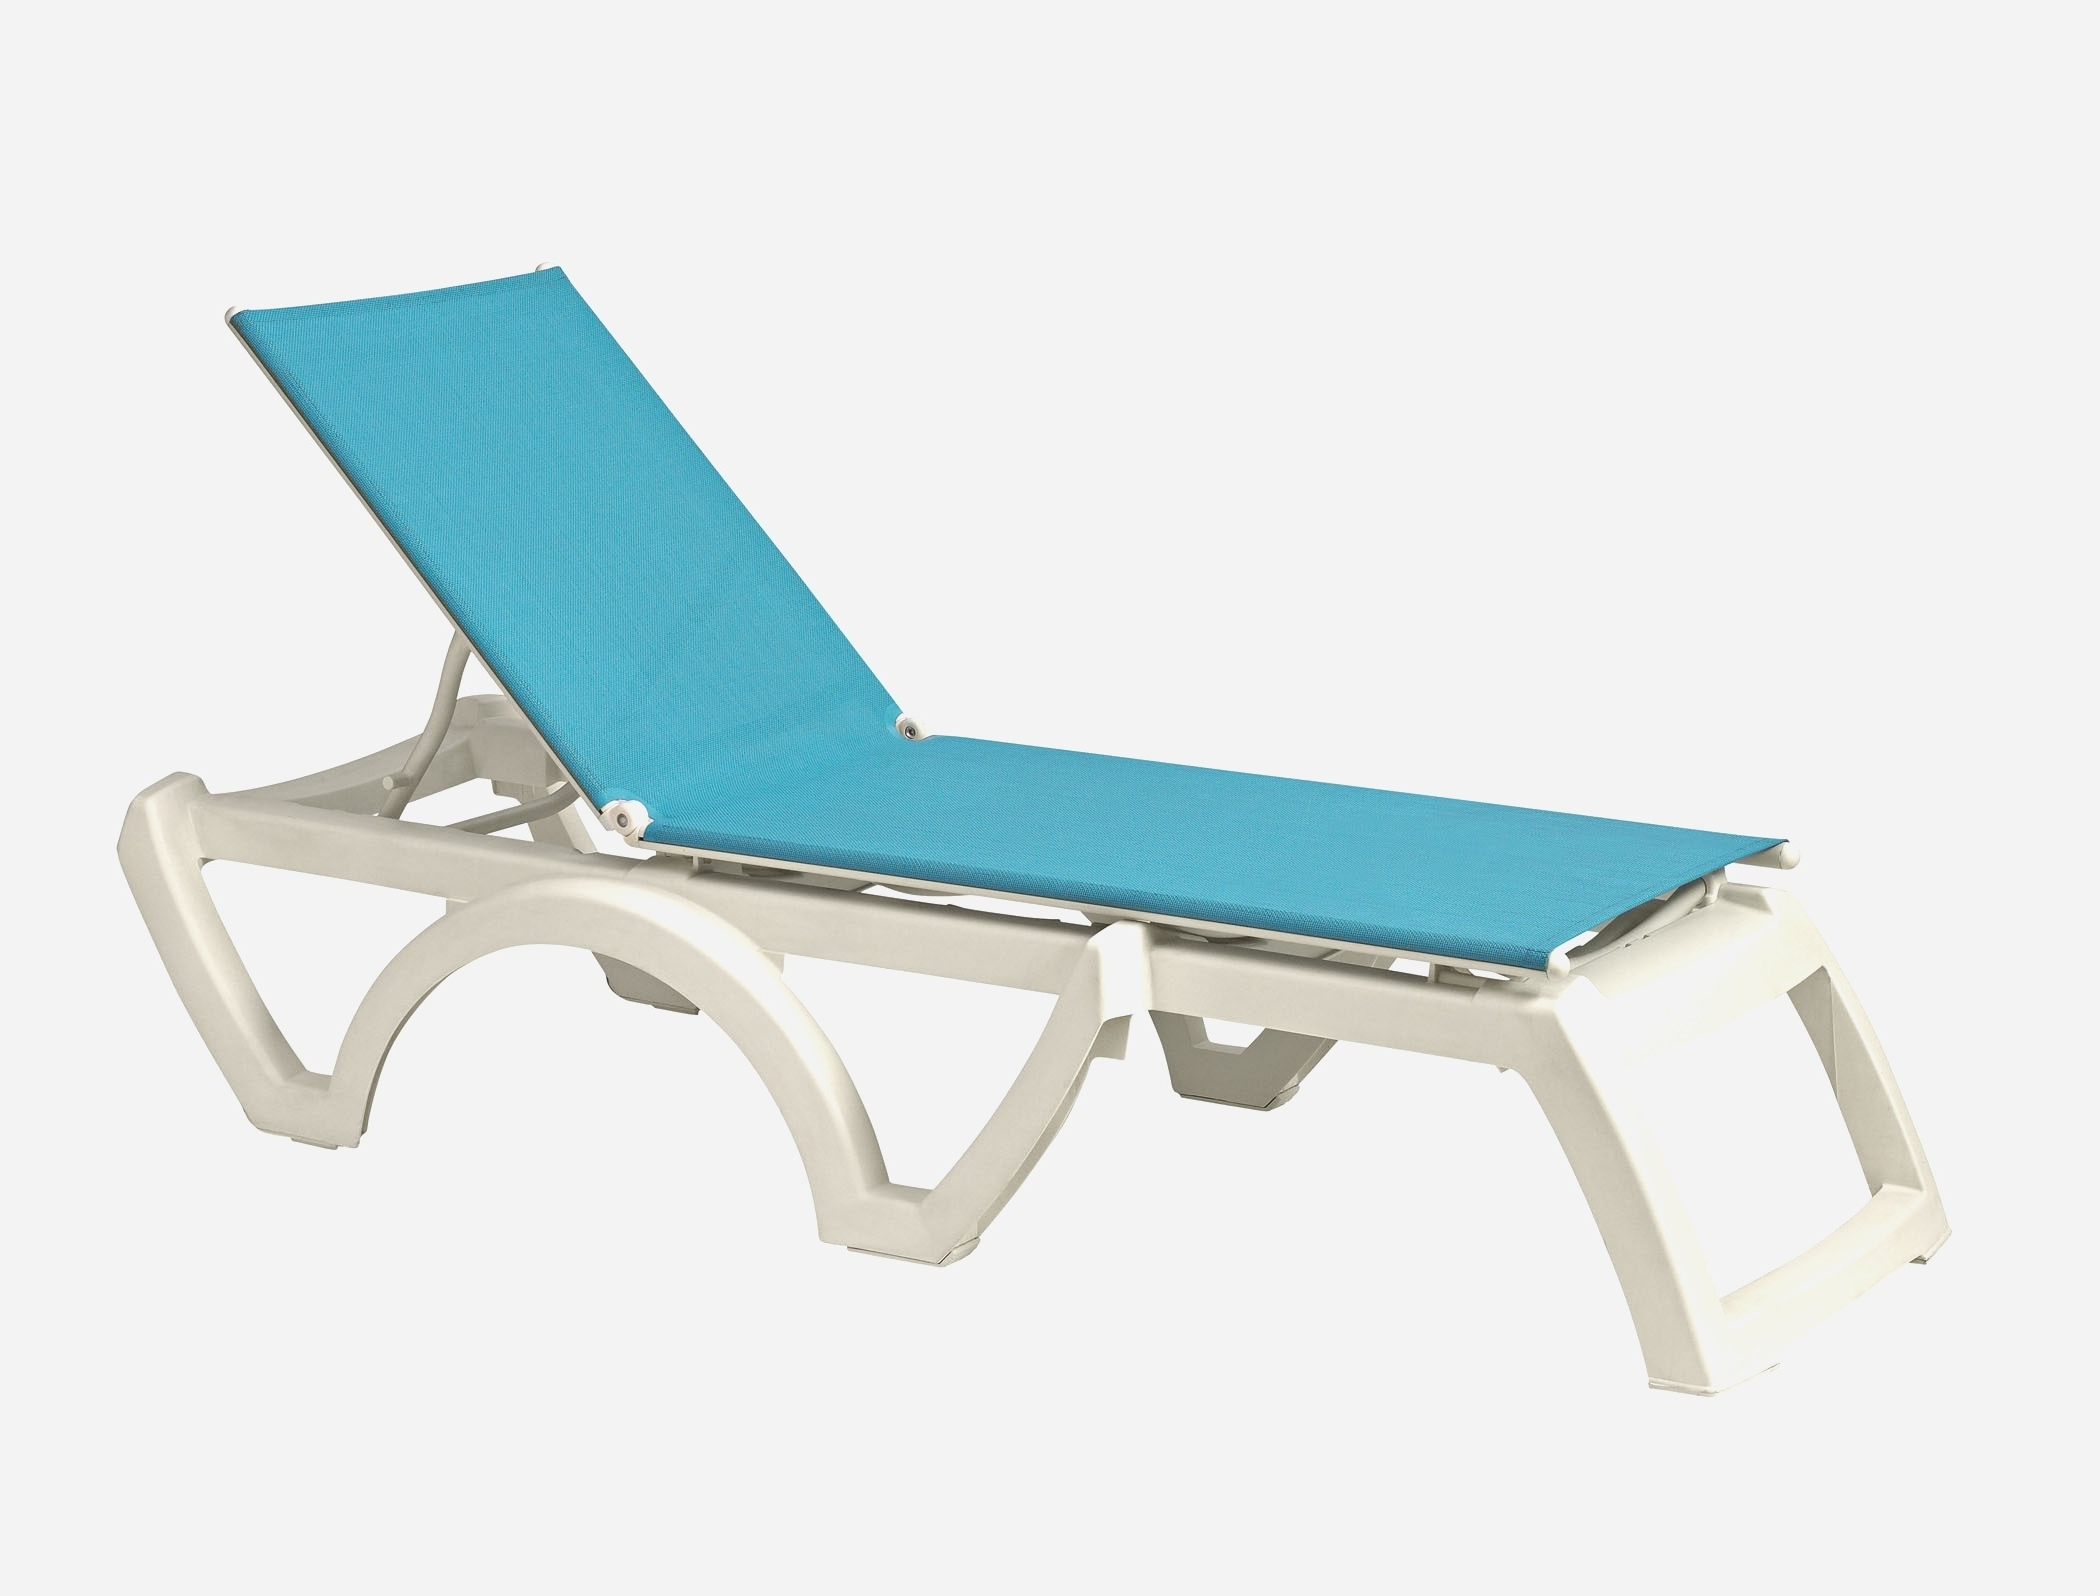 Grosfillex Chaise Lounge Chairs Intended For Well Known Grosfillex Chaise Lounge Chairs • Lounge Chairs Ideas (View 5 of 15)